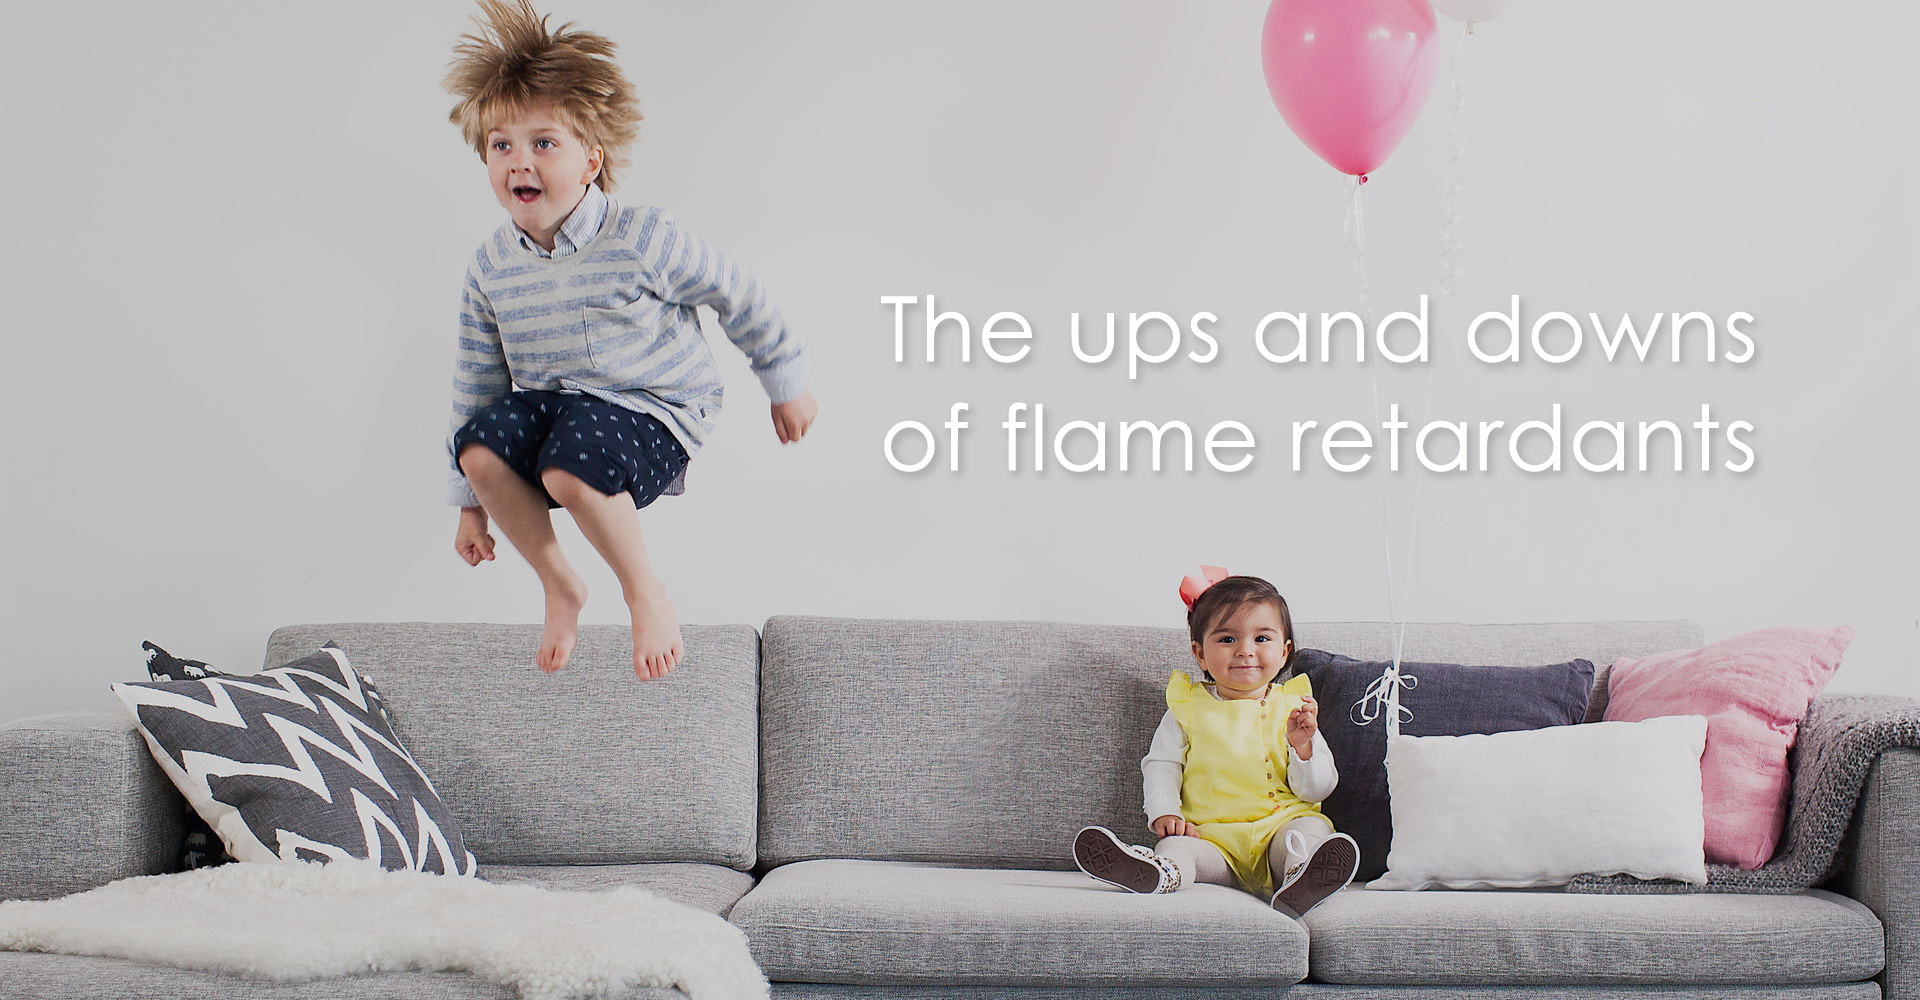 The ups and downs of flame retardants